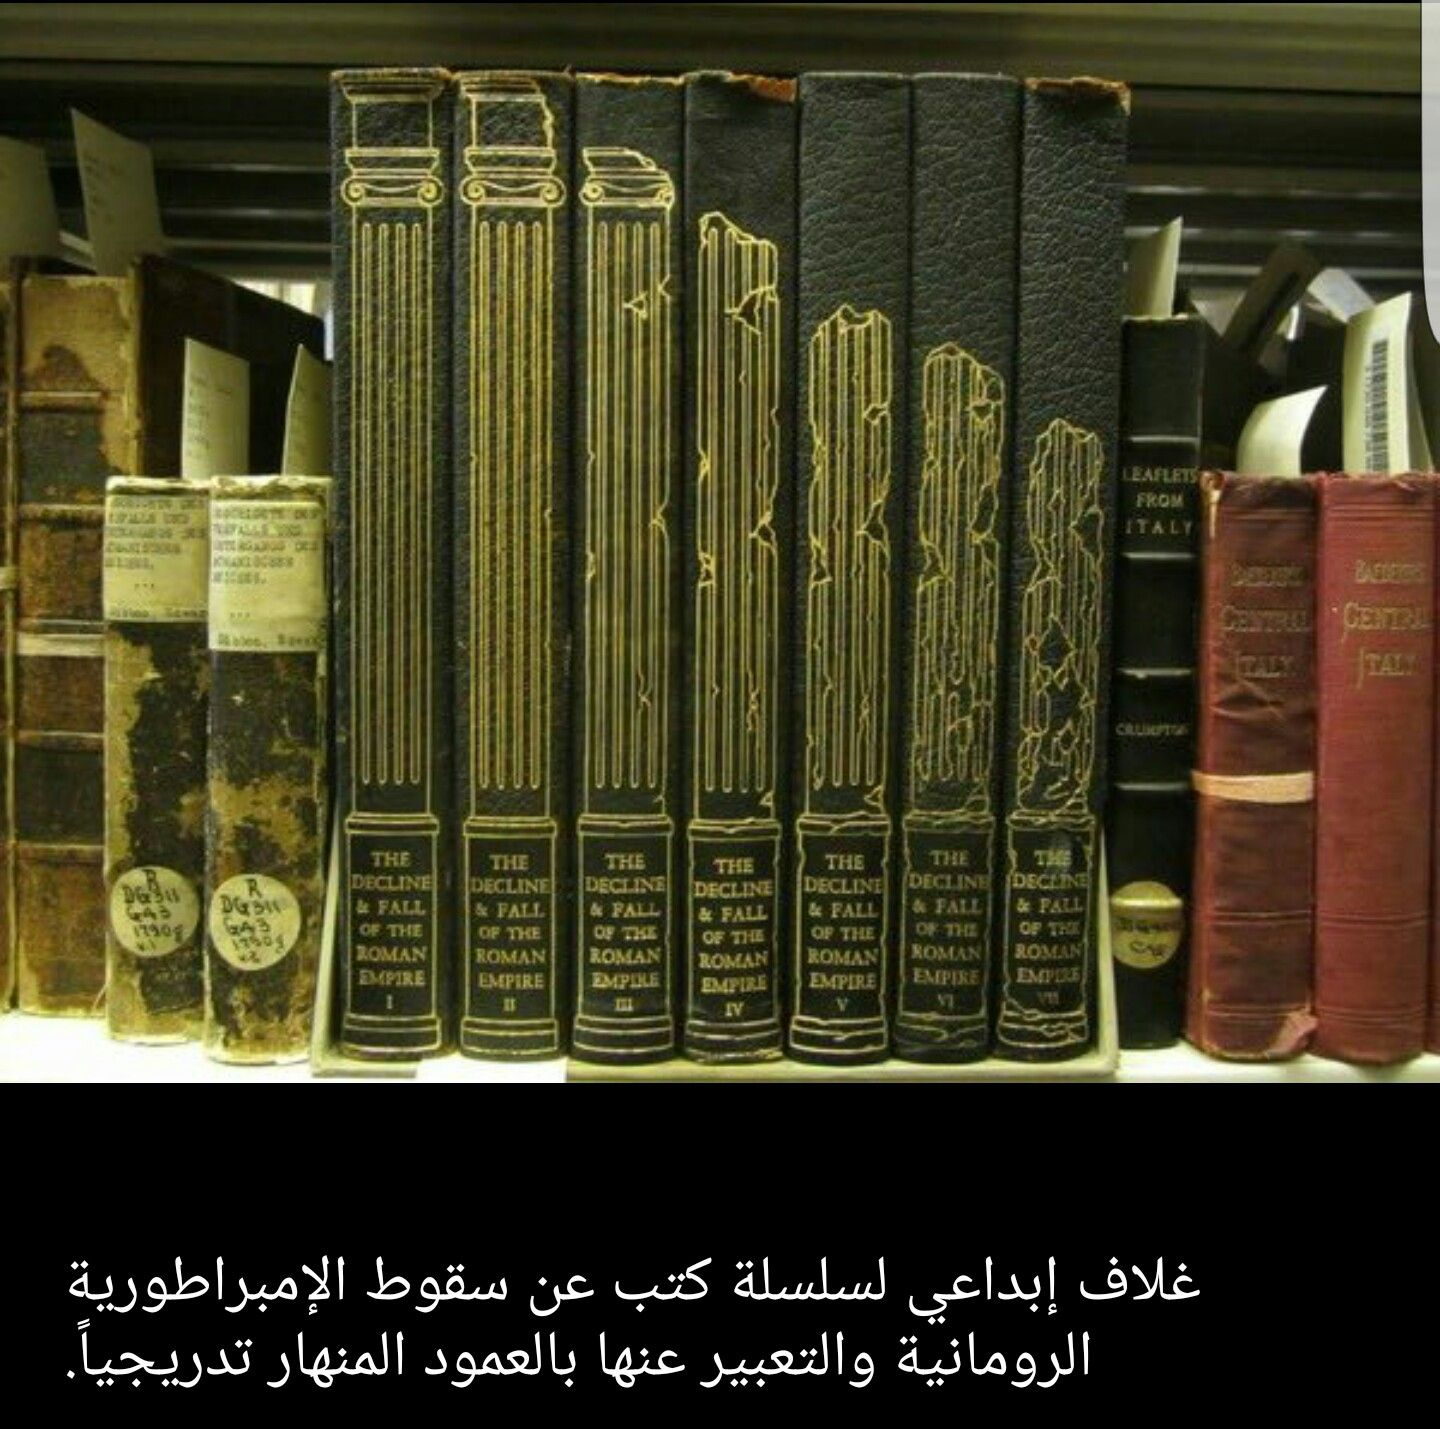 Pin By حاطب ليل On هل تعلم Book Spine Design Book Design Roman Empire